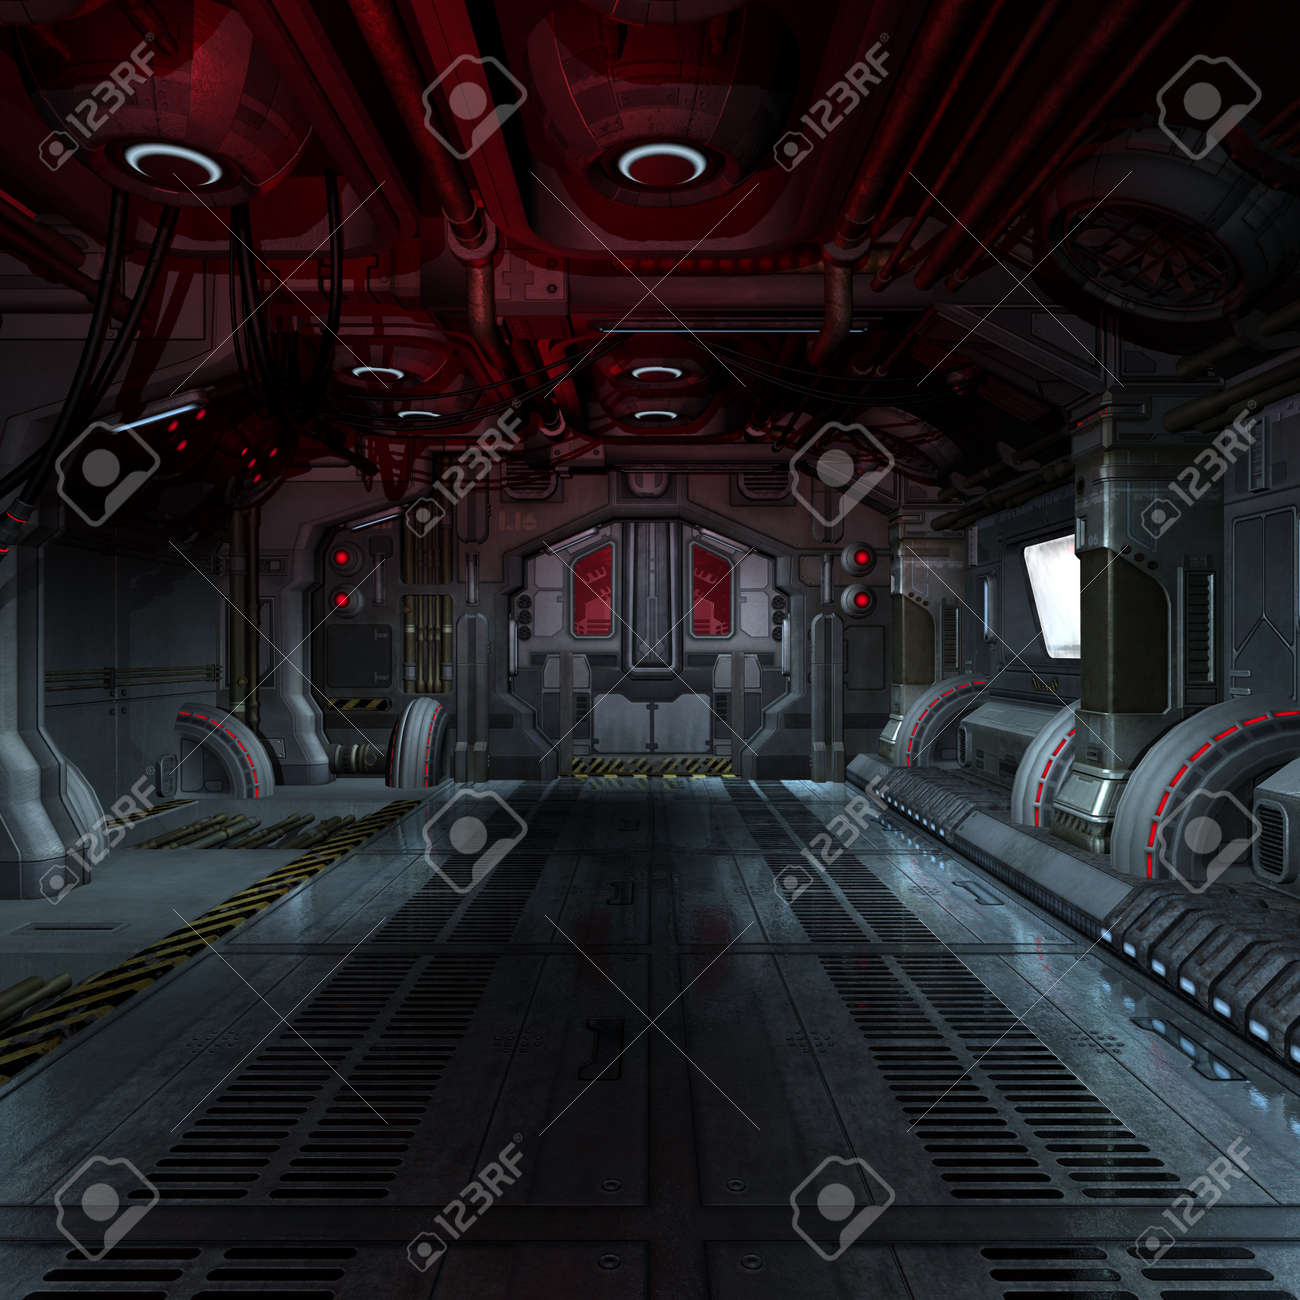 inside a futuristic scifi spaceship 3d rendering for background